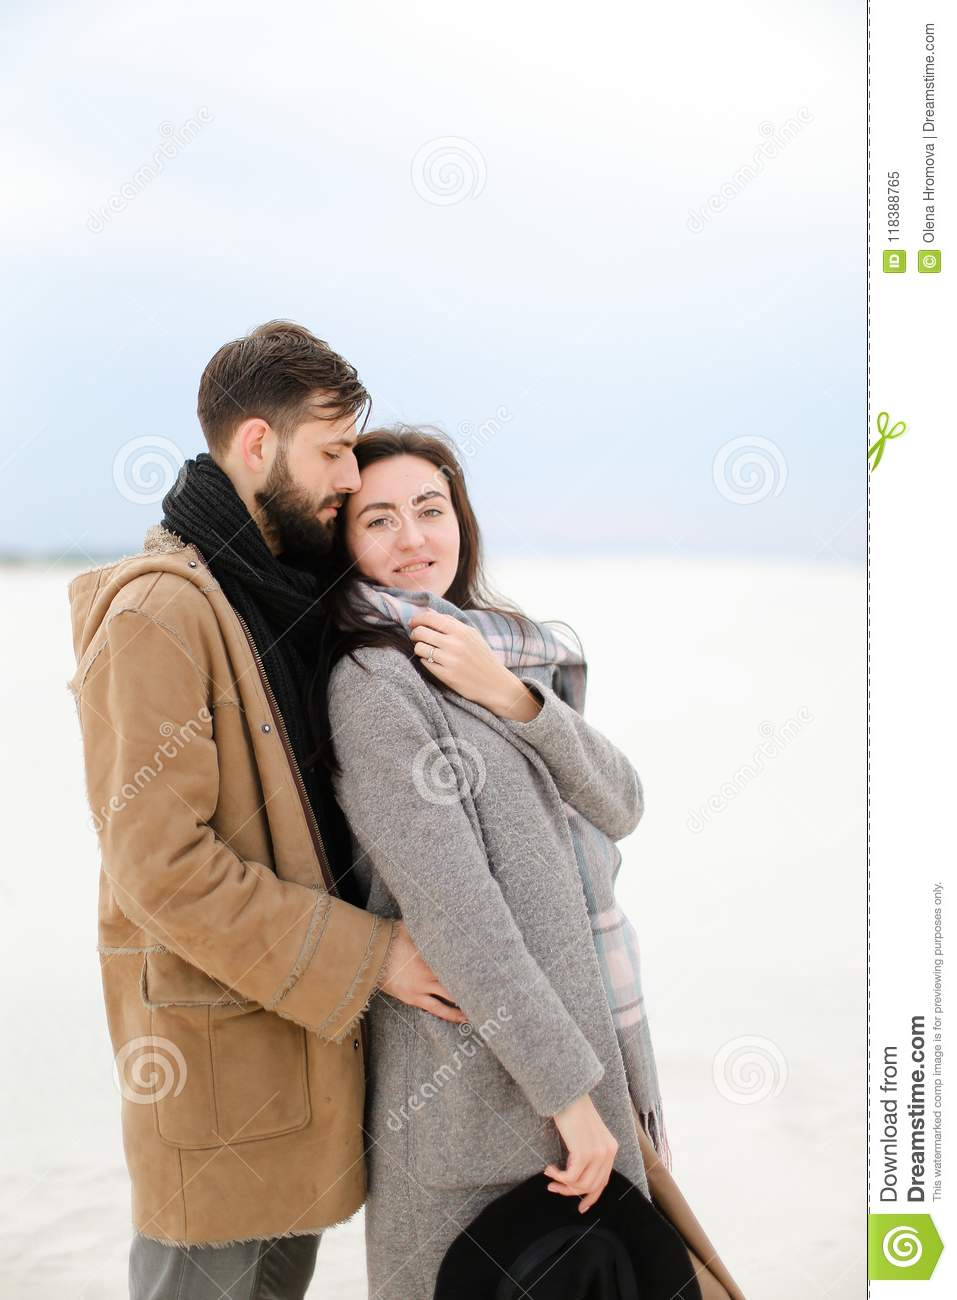 Happy young man with beard hugging female person wearing grey coat and scarf, white winter monophonic background.